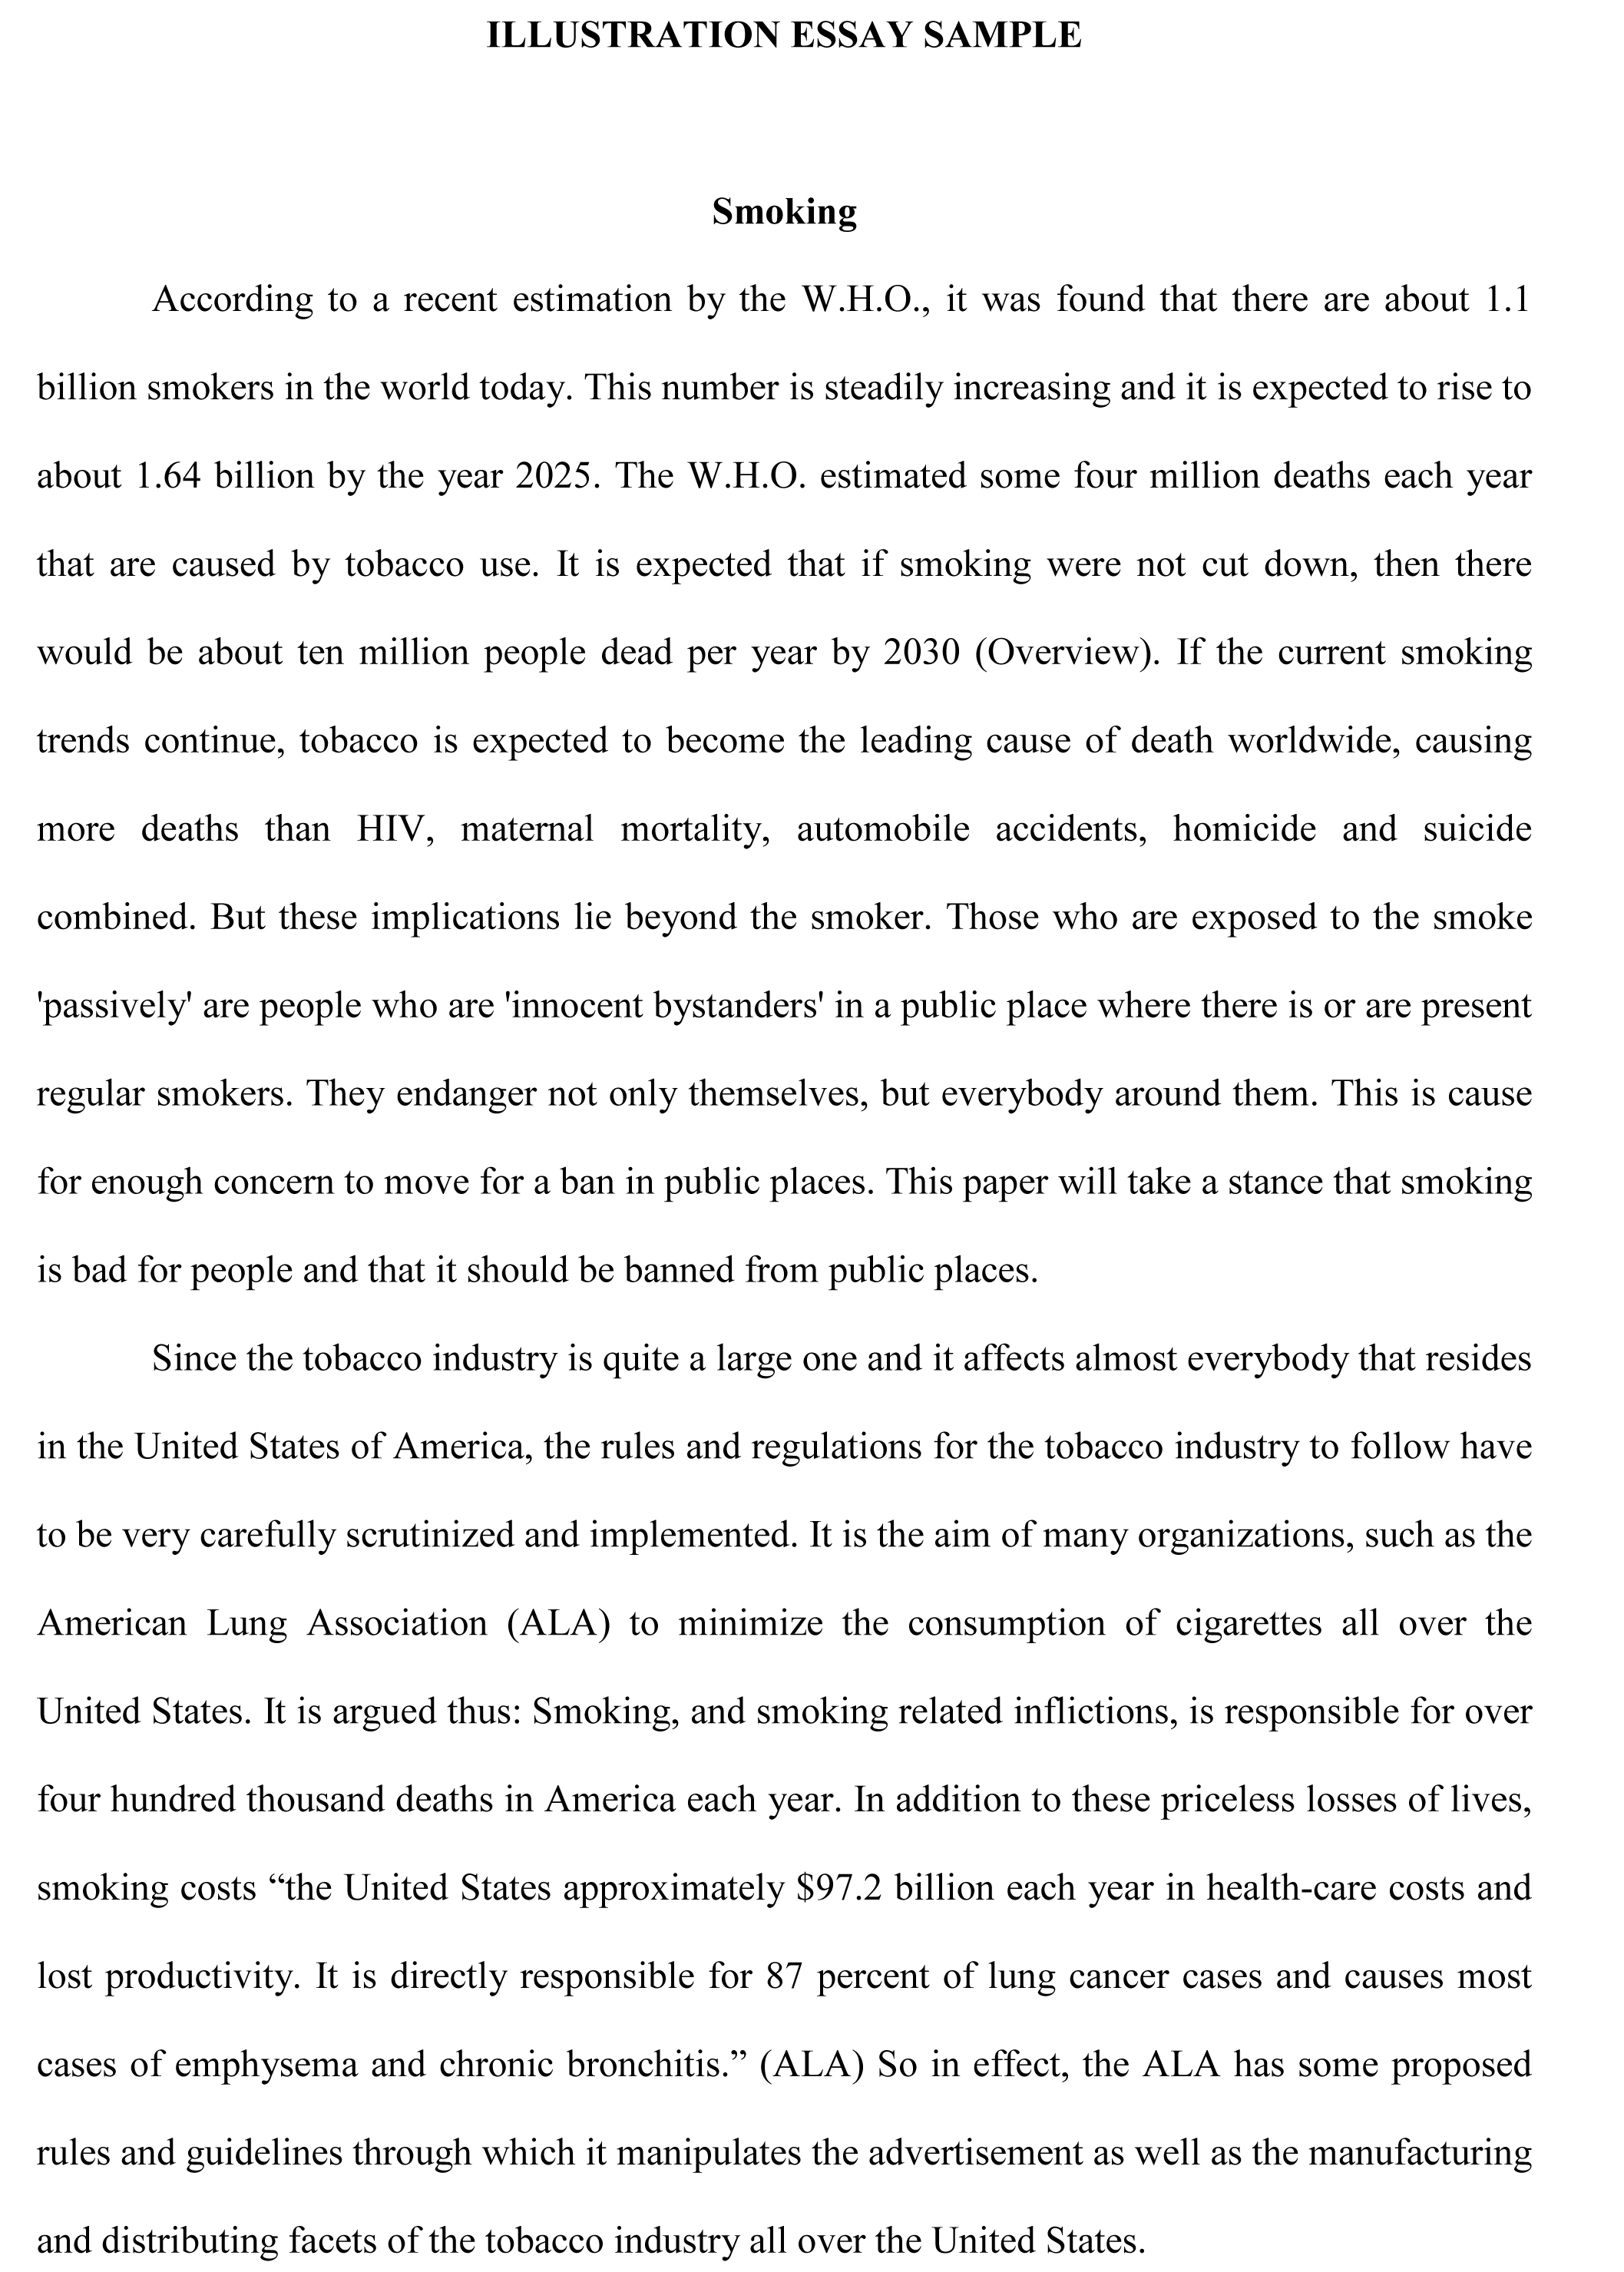 007 Essay Example Illustration Sample Act Fearsome Examples Good Score Average Full